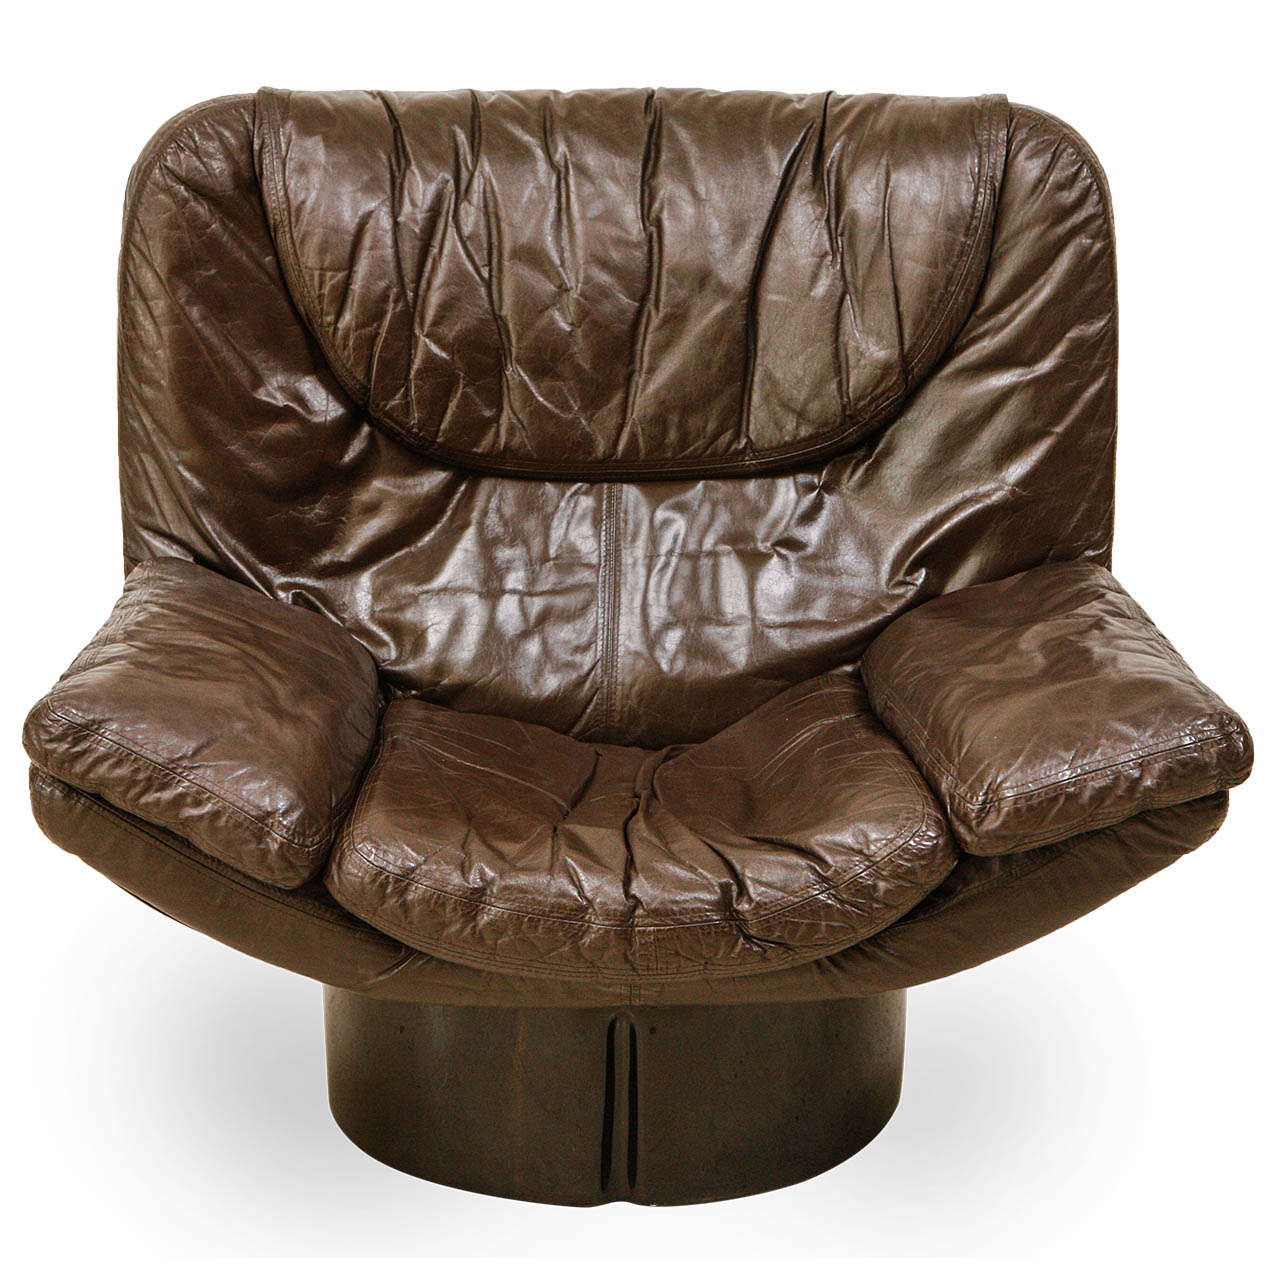 Leather Sofa Repairs Enfield: Lounge Chair By Comfort Designed By T.Ammannati And G.P